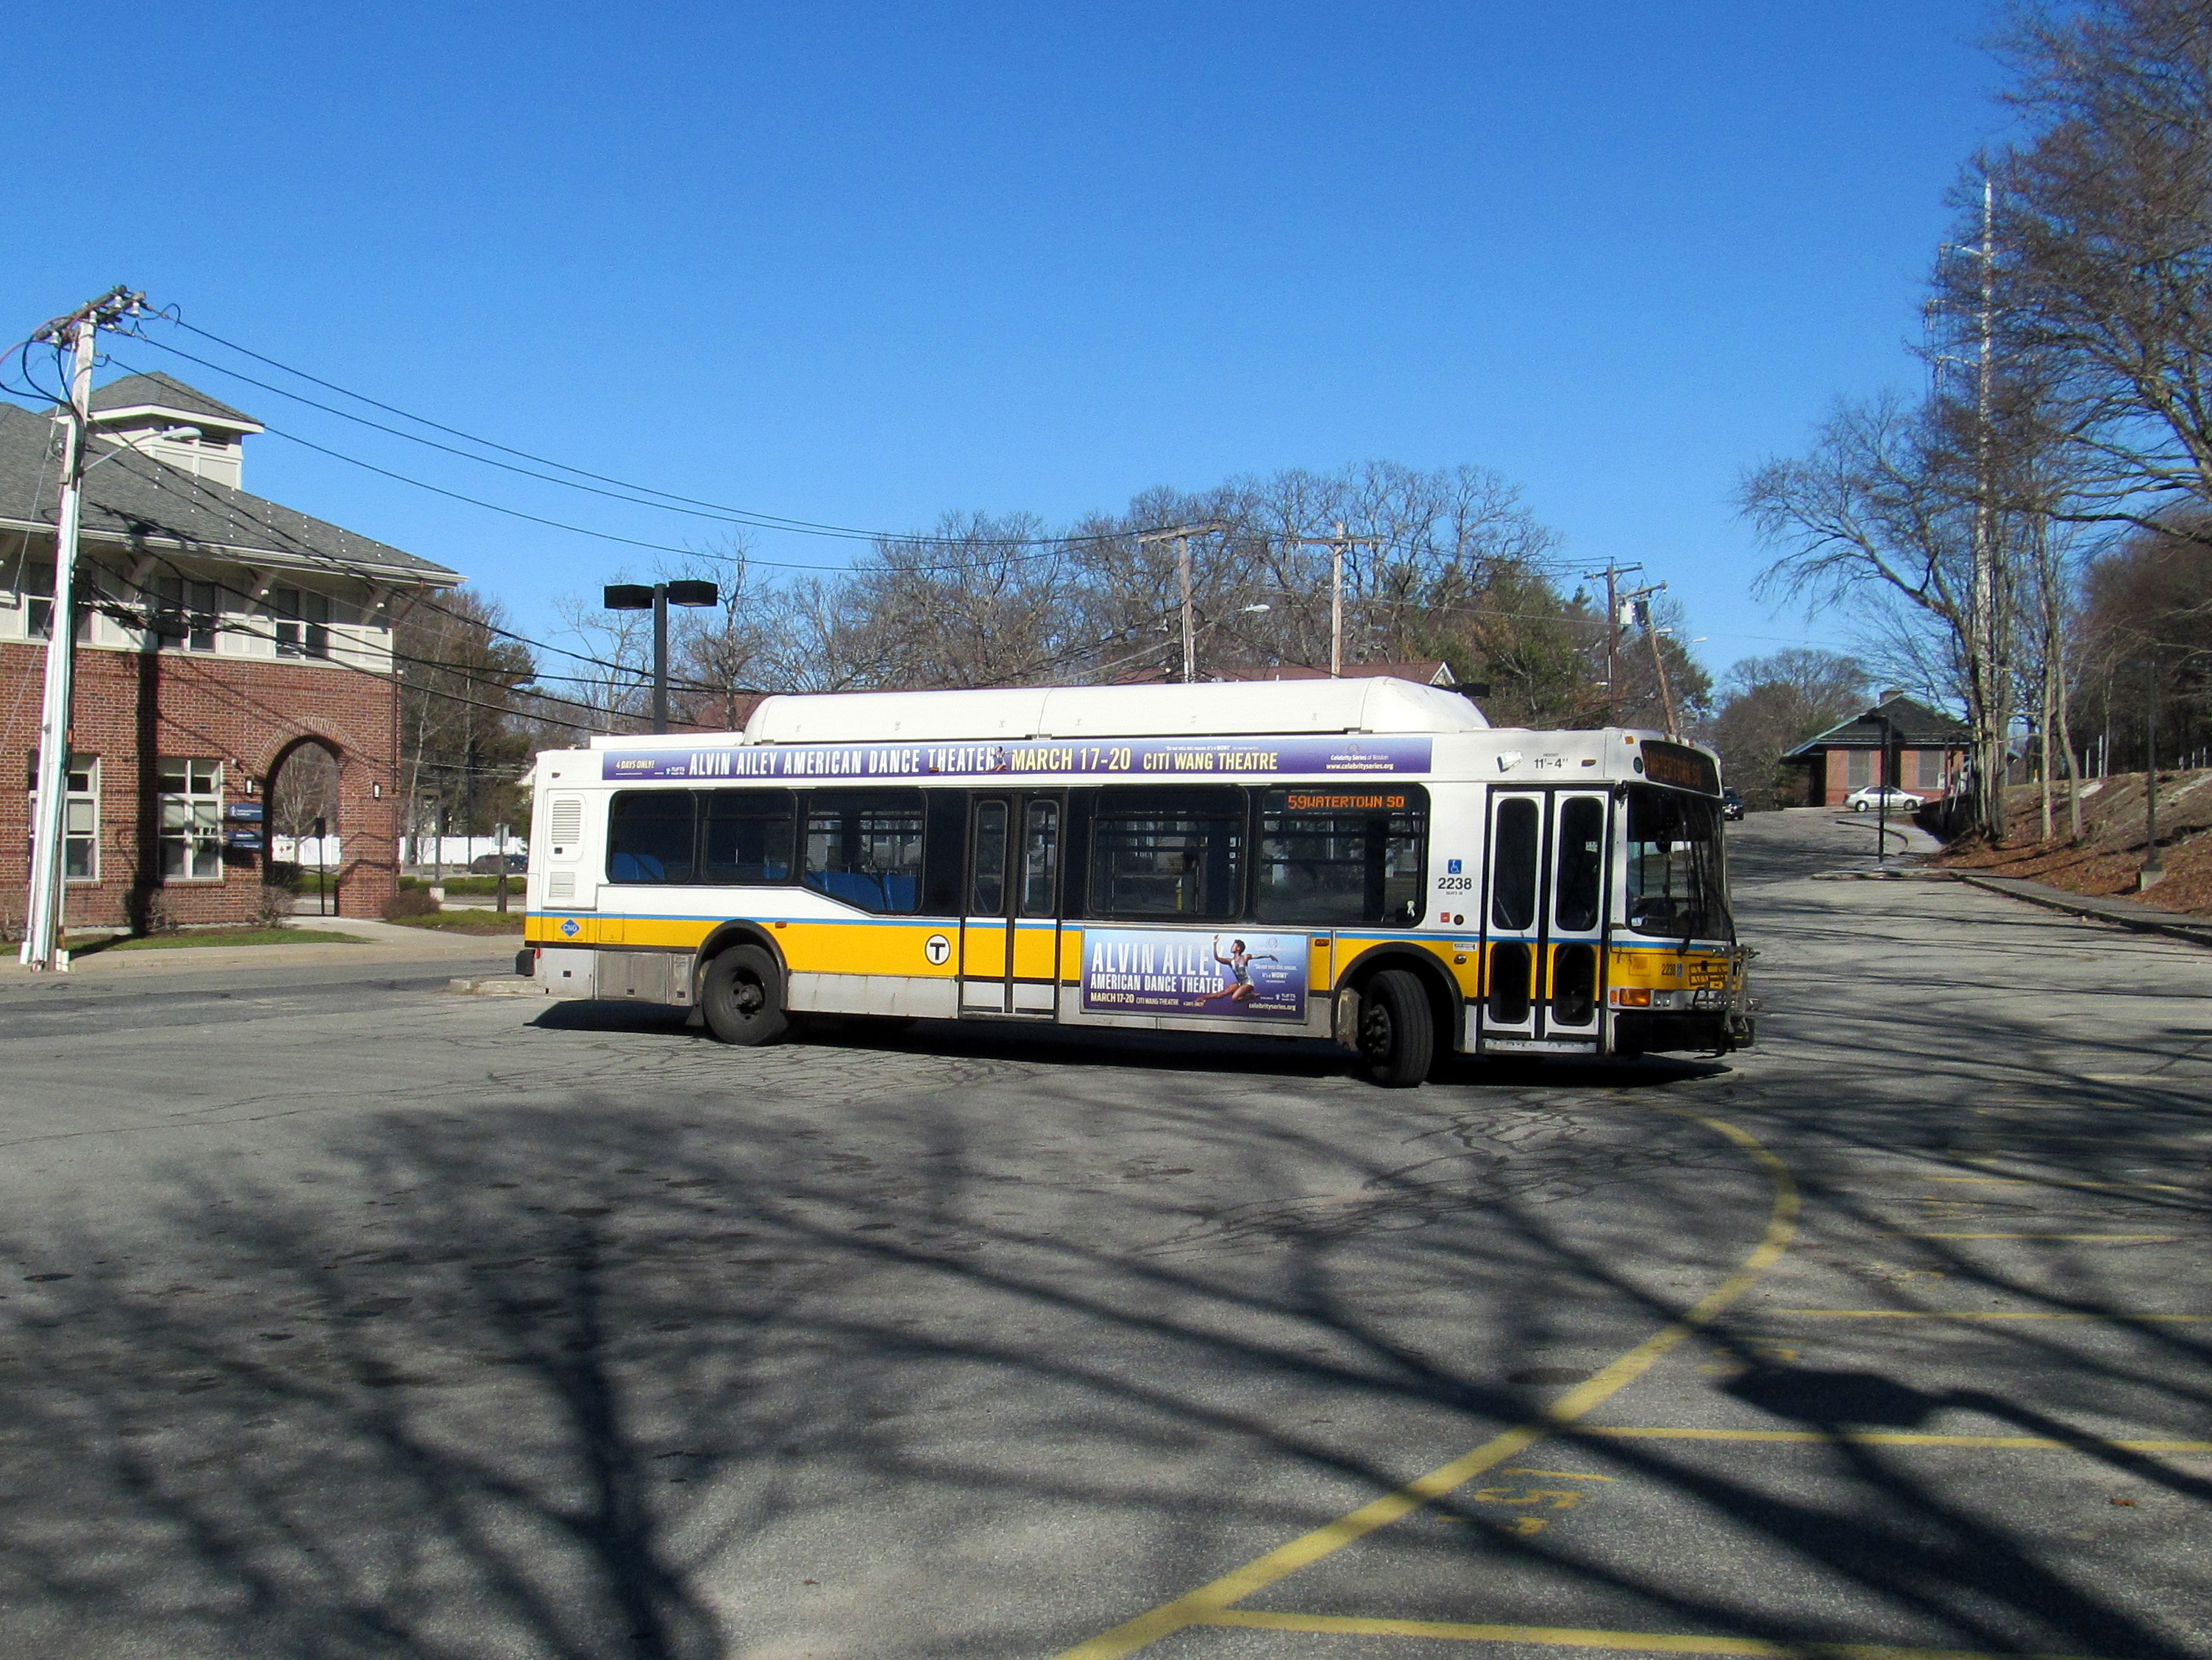 file:mbta route 59 bus turning at needham junction, march 2016